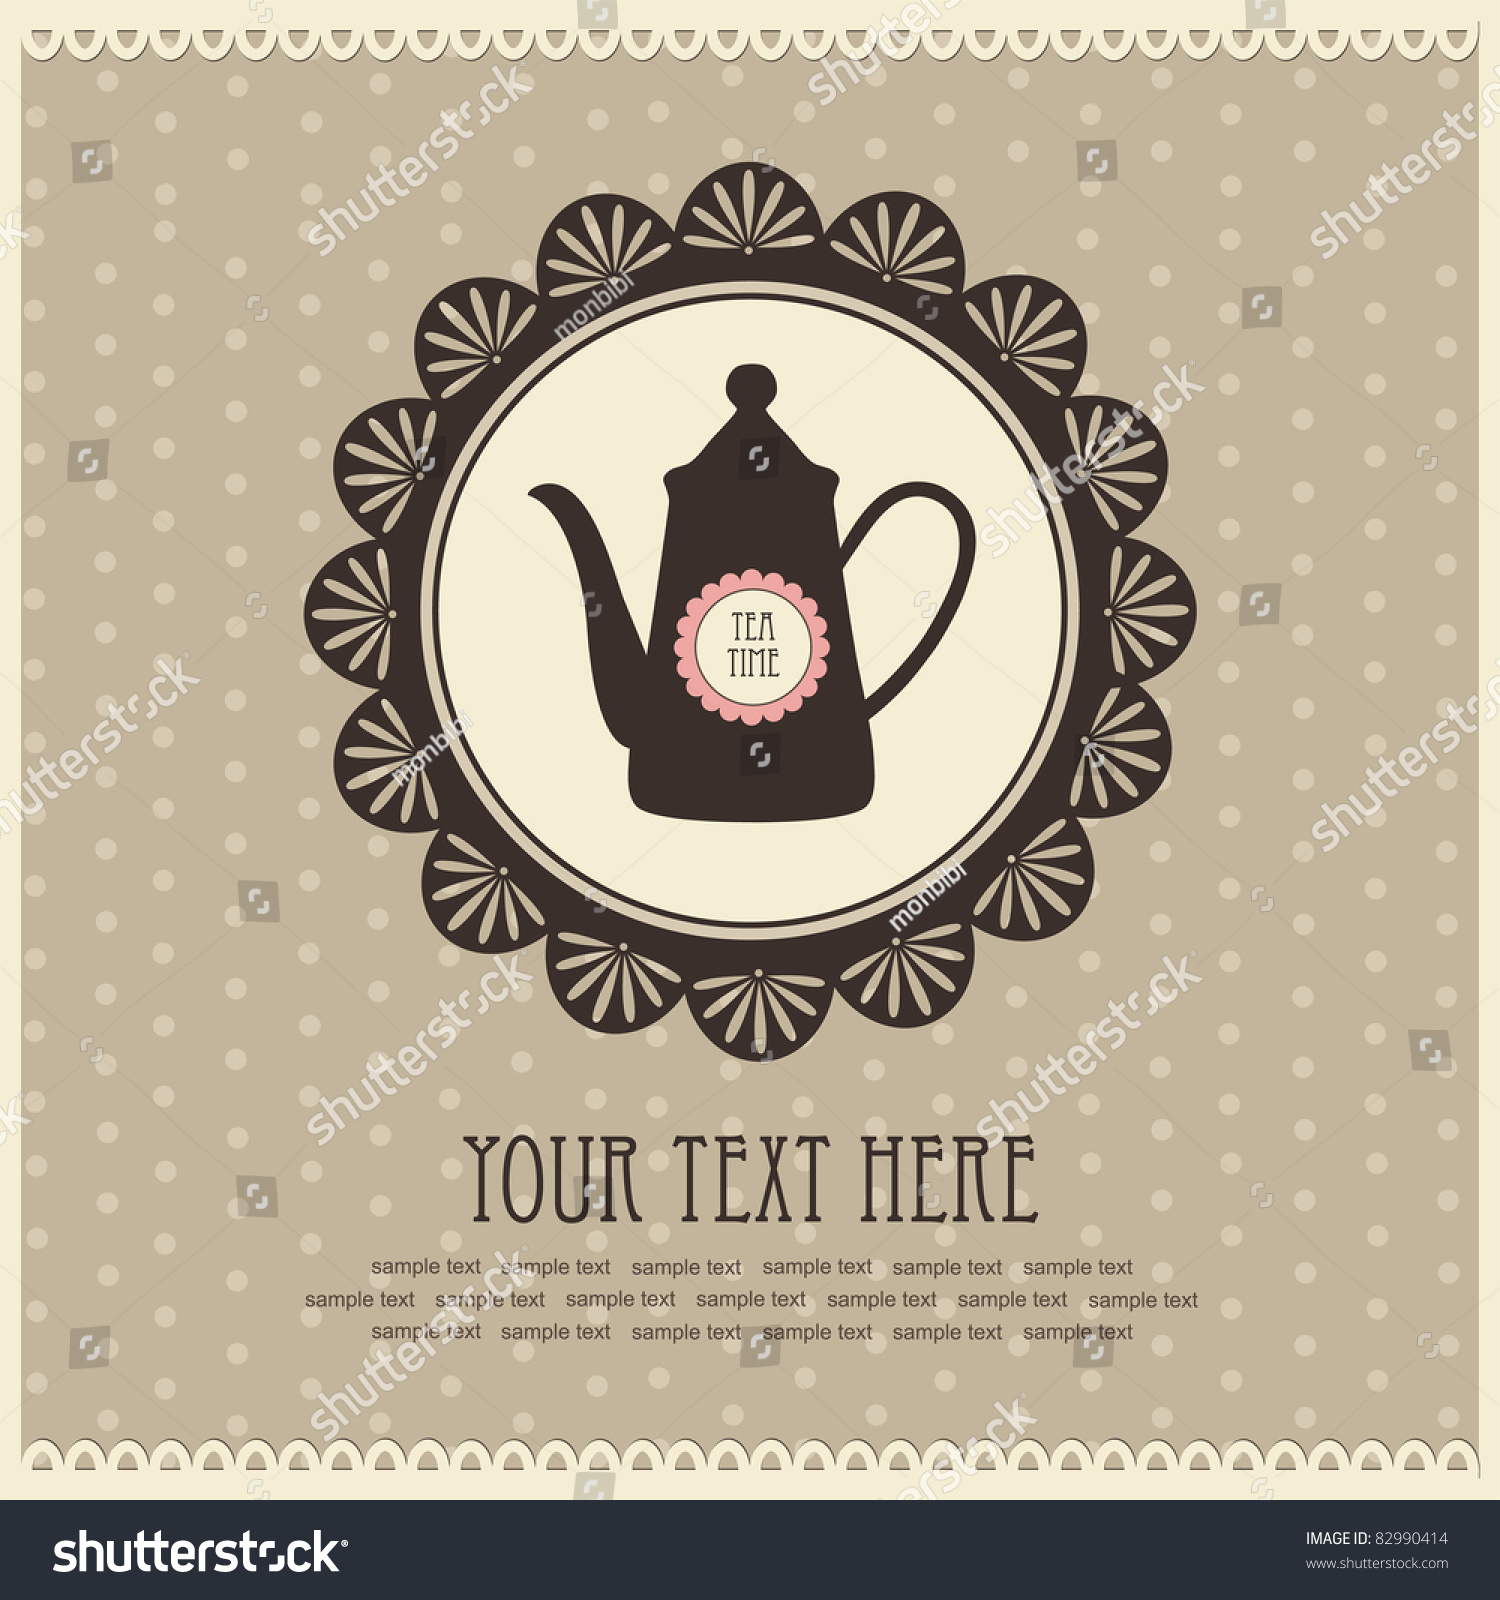 Vintage Card With Teapot. Vector Illustration - 82990414 ...